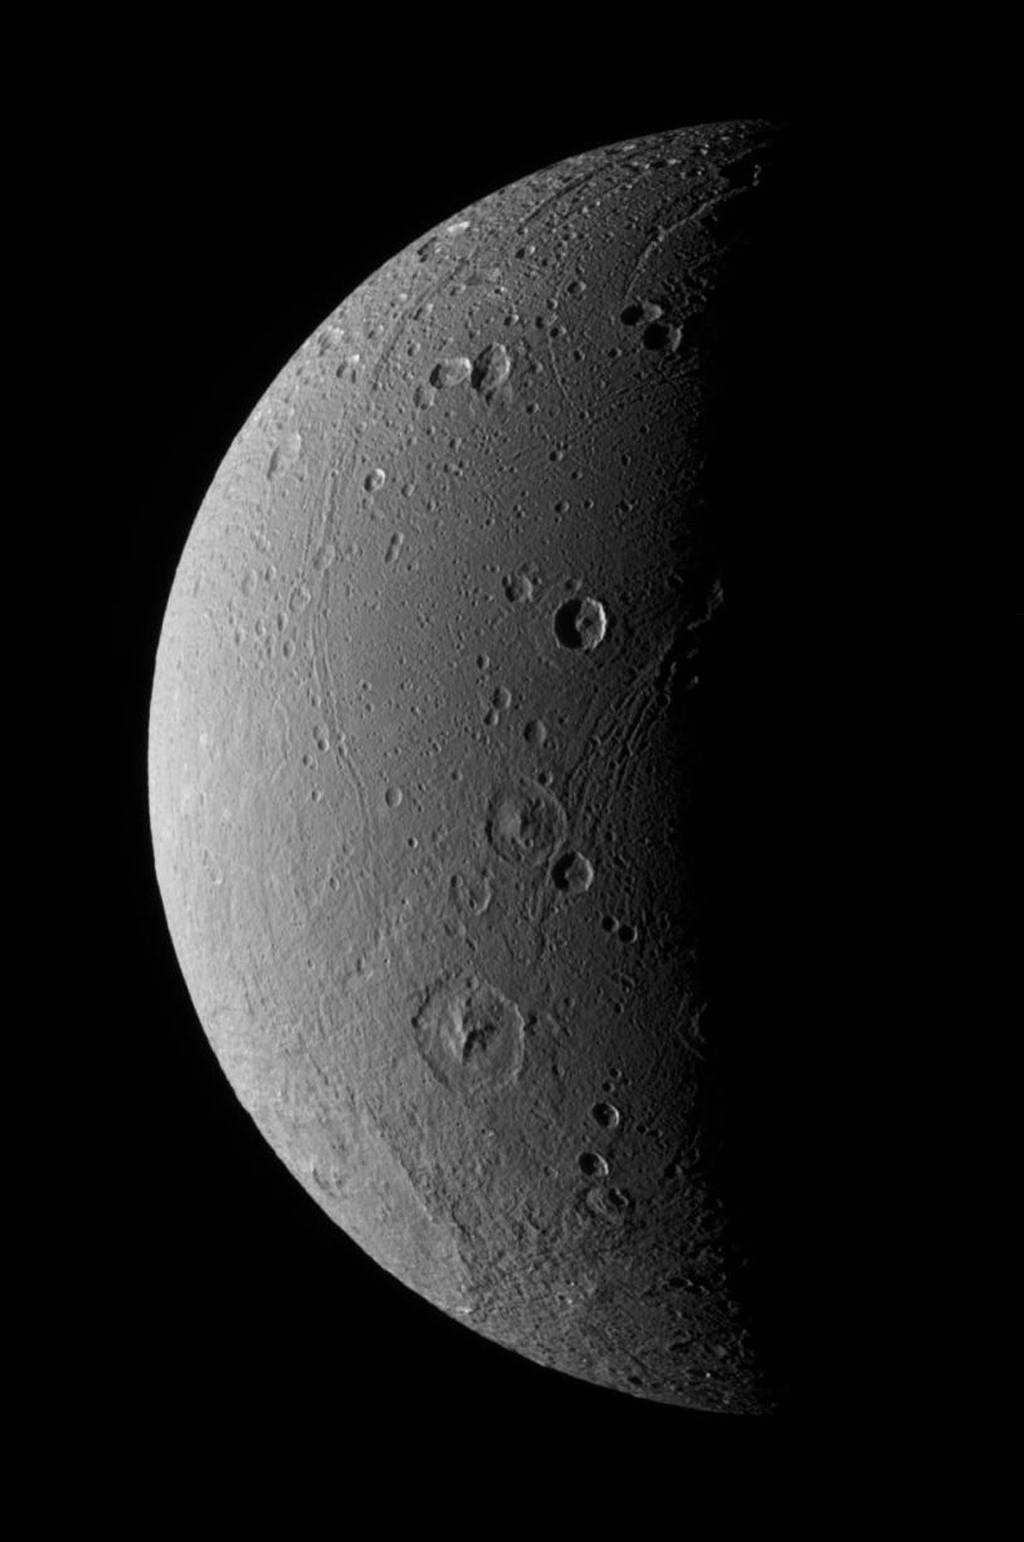 This view captured by NASA's Cassini spacecraft highlights tectonic faults and craters on Saturn's moon Dione, an icy world that has undoubtedly experienced geologic activity since its formation.